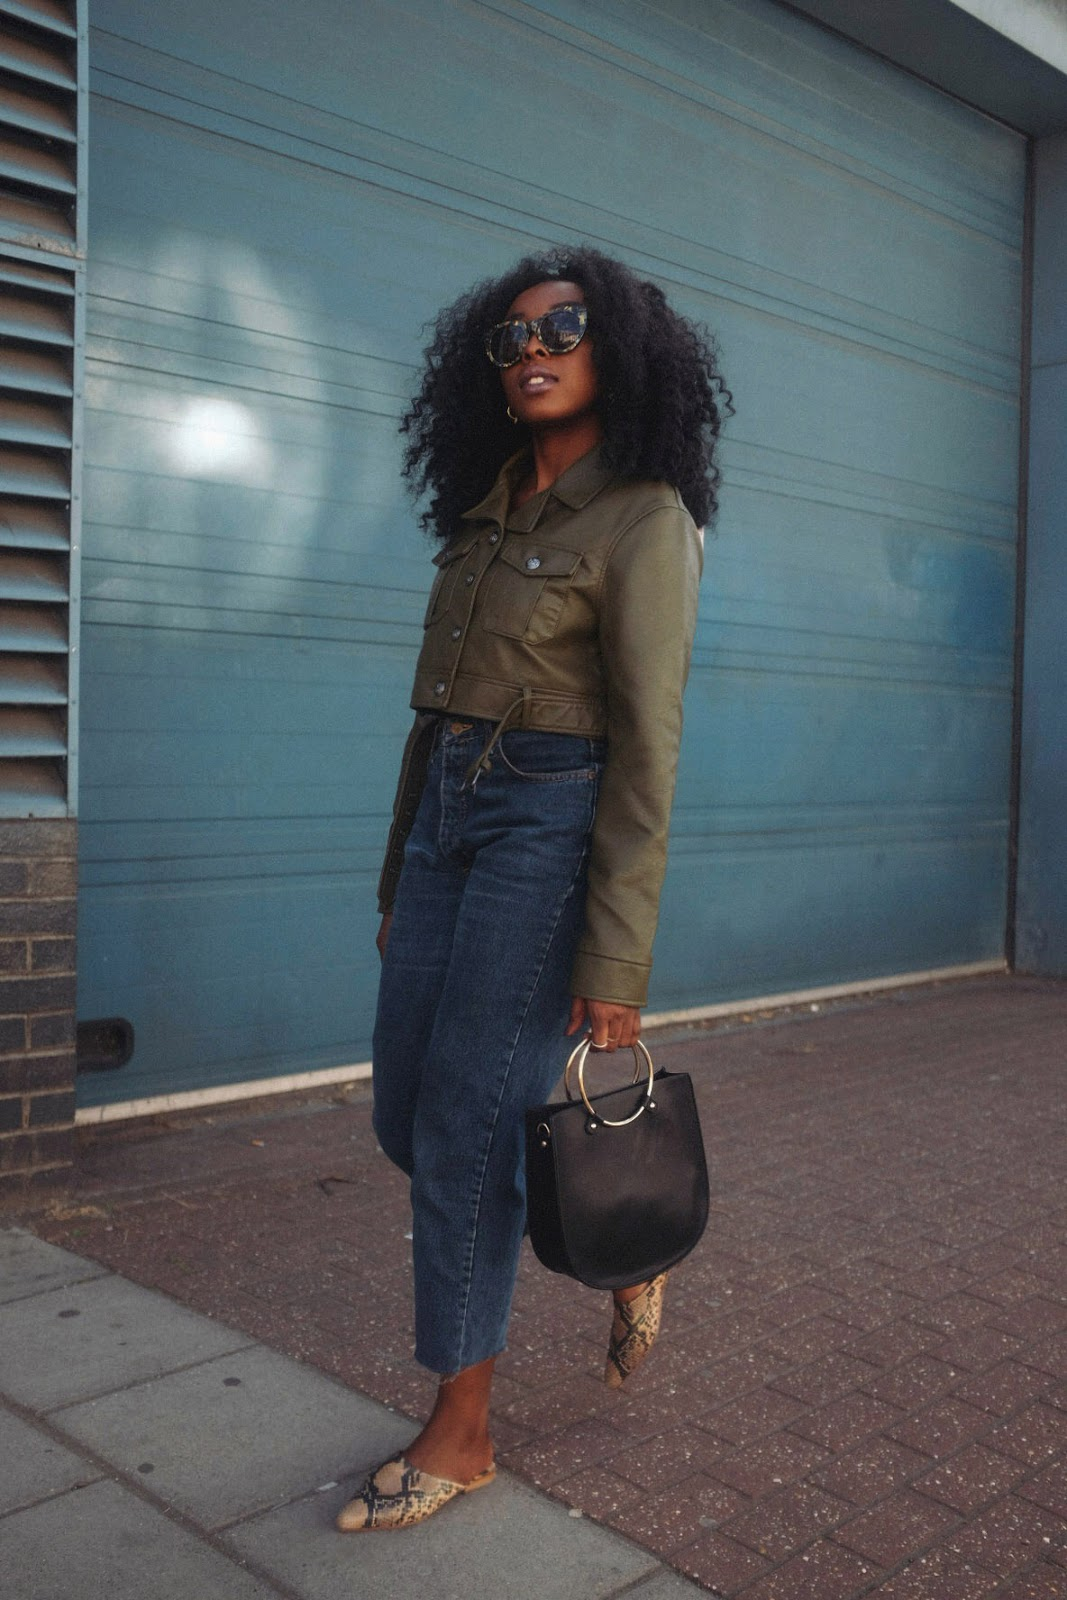 Missguided khaki faux leather super crop trucker jacket Kiliwatch vintage Lee jeans Forever21 gold handle bag H&M oversized sunglasses H&M snake print slip on mules Havana jumbo twist crochet hair